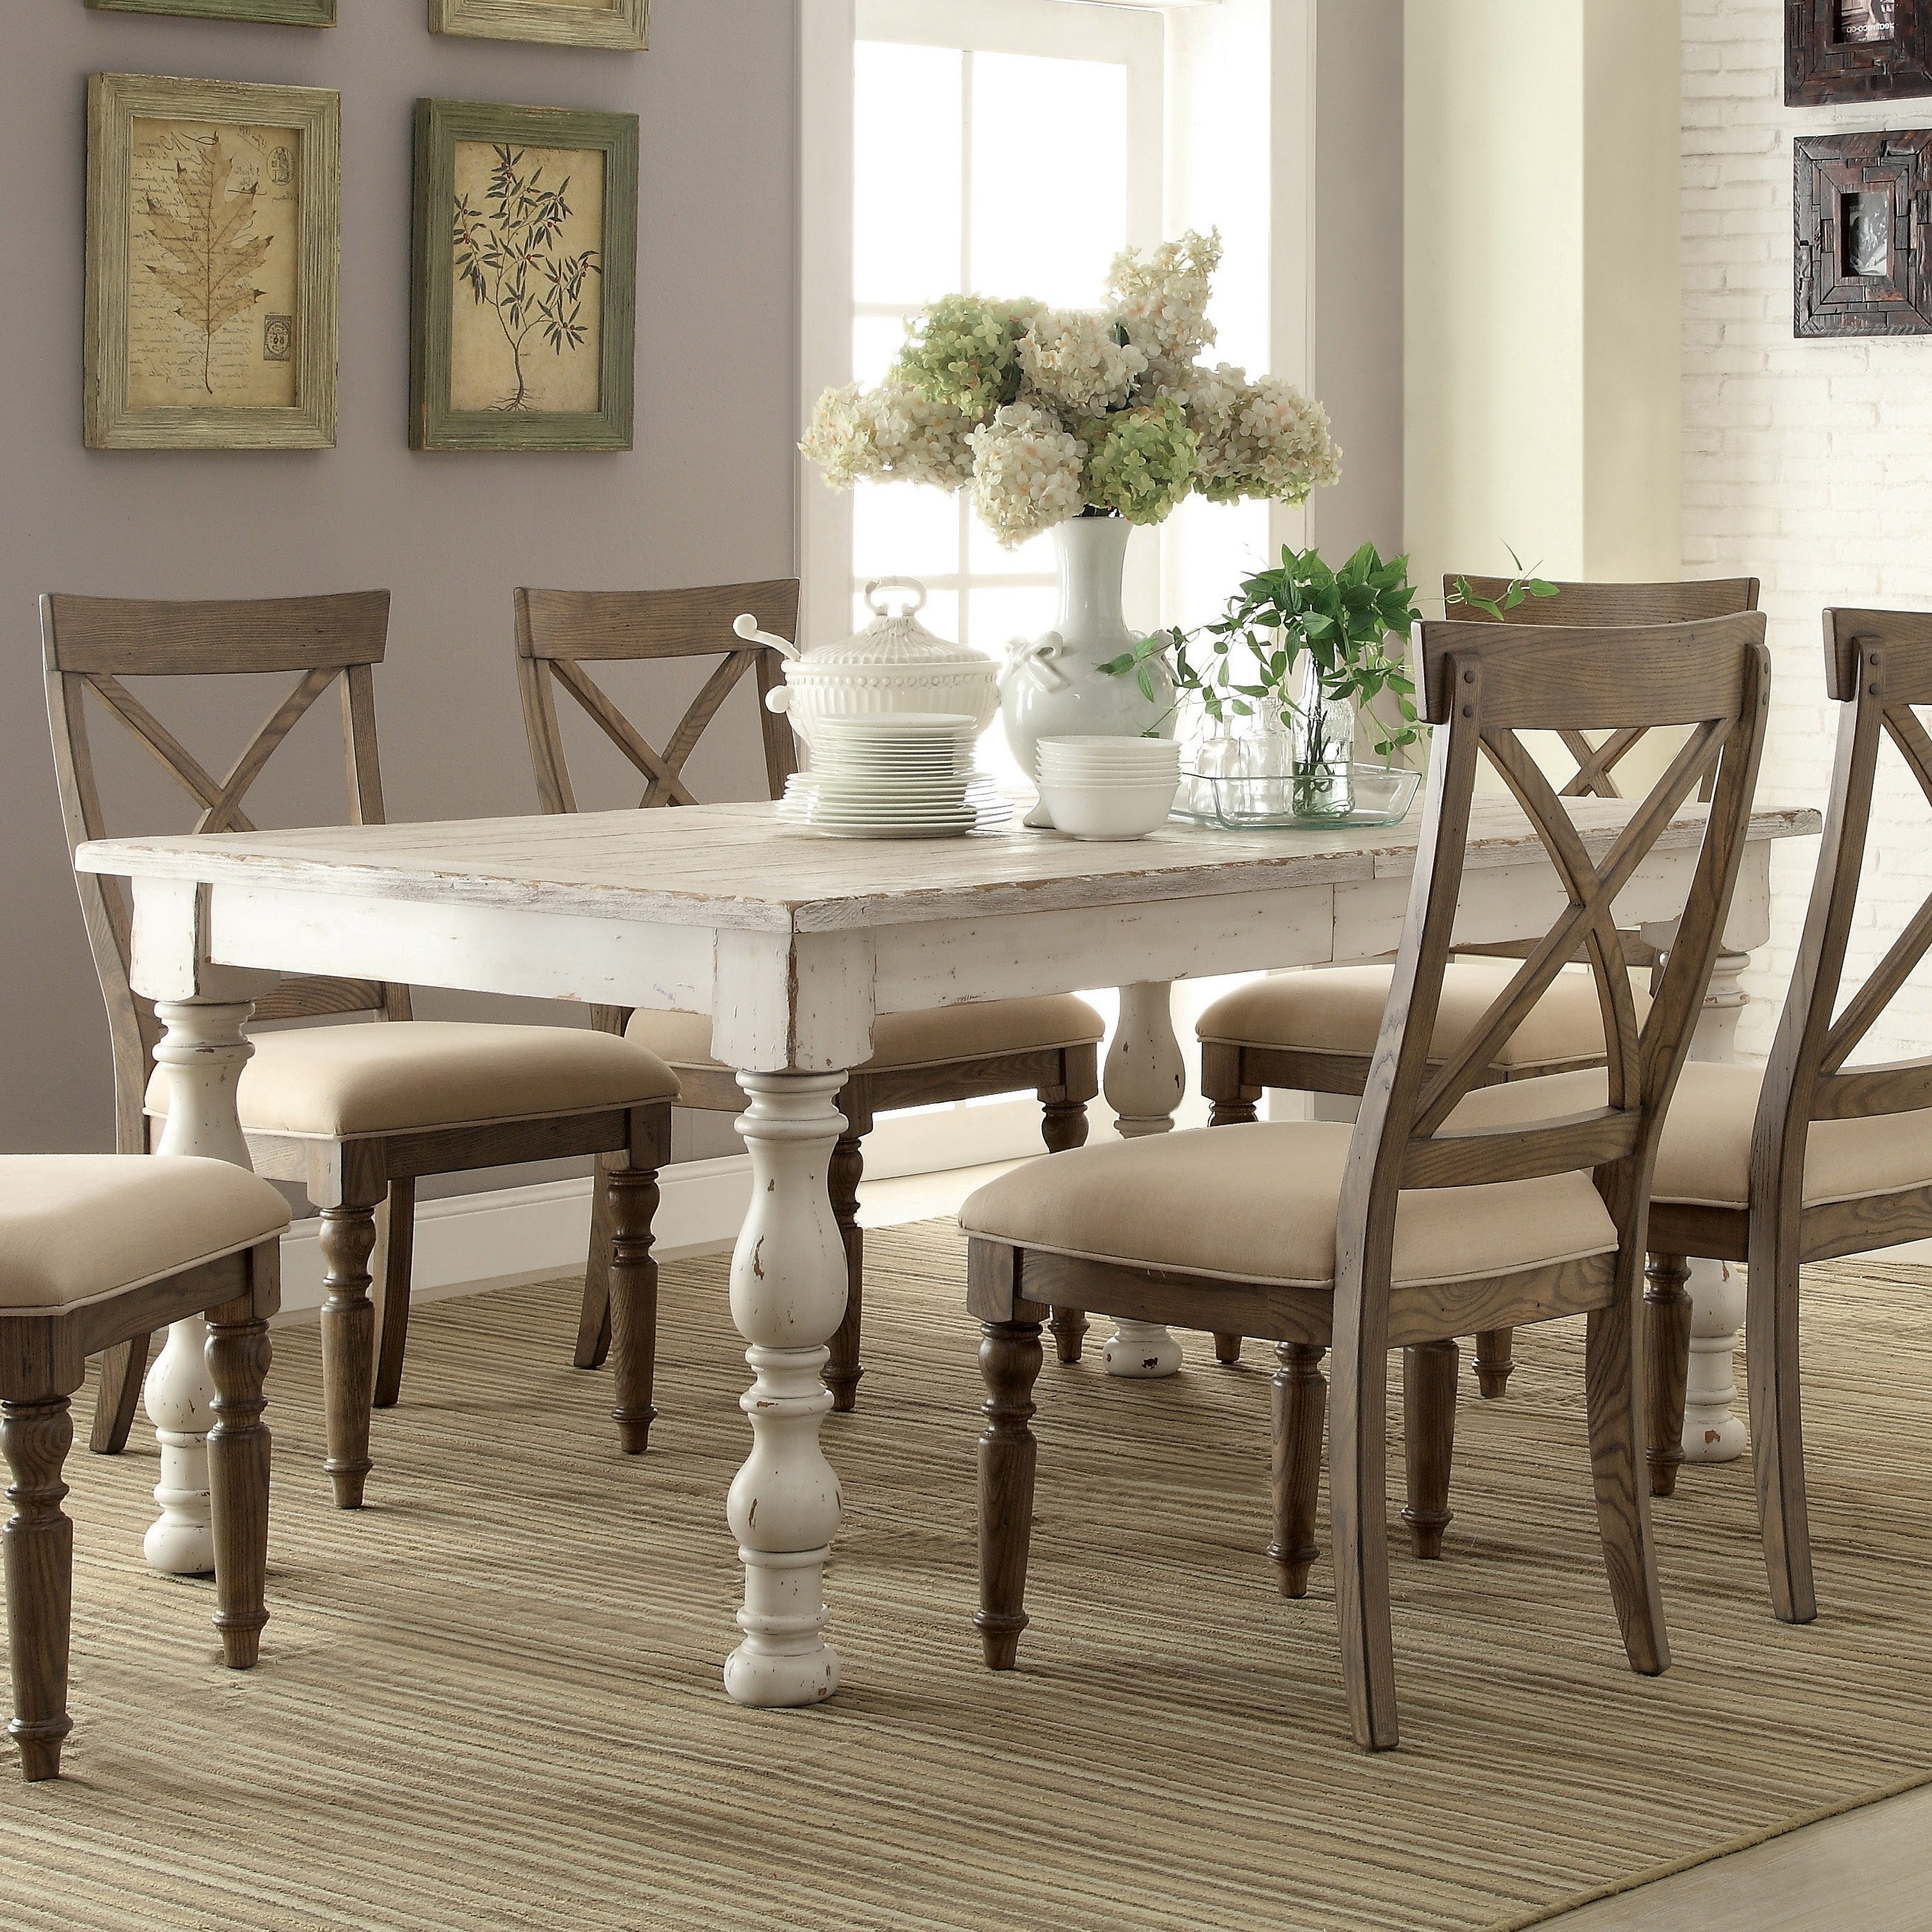 Preferred Dining Tables Sets Intended For High End Dining Tables & Kitchen Table Sets (View 24 of 25)